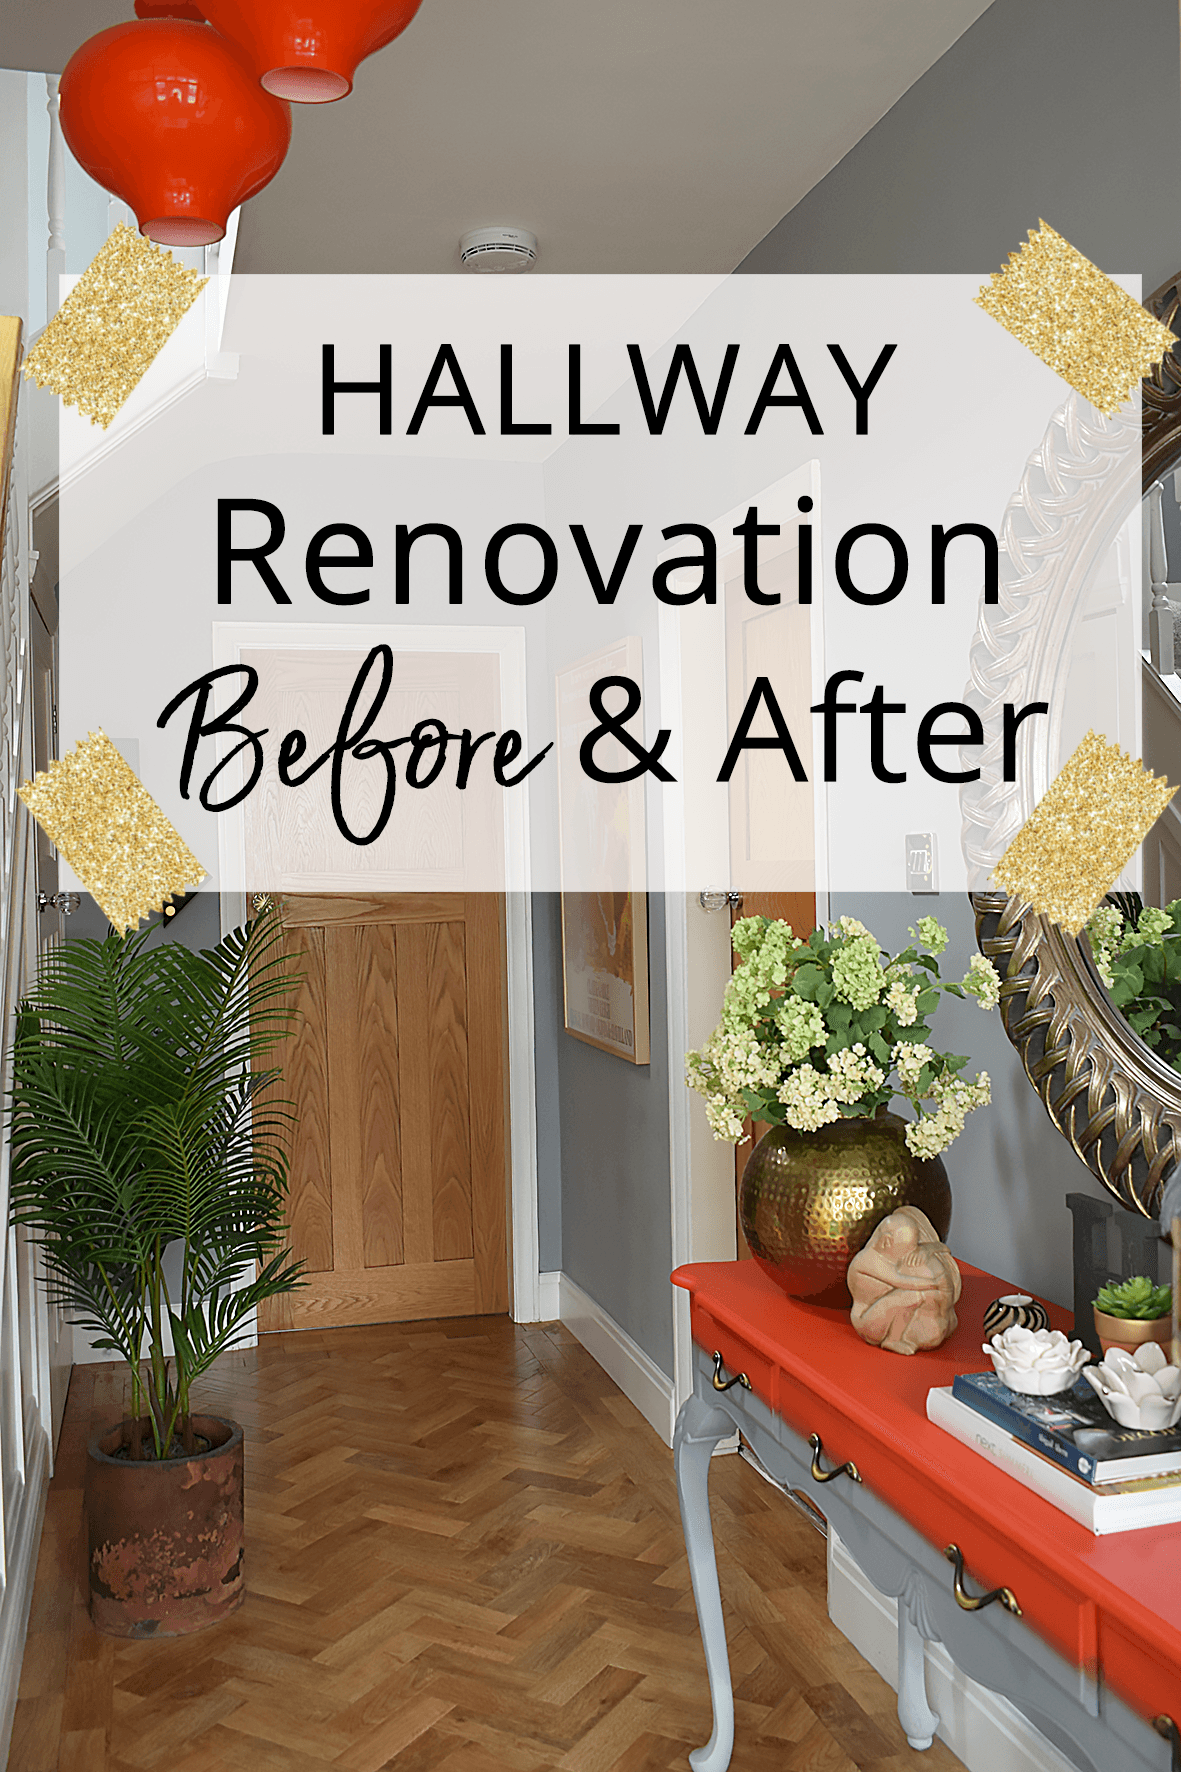 Hallway Renovation Before and After